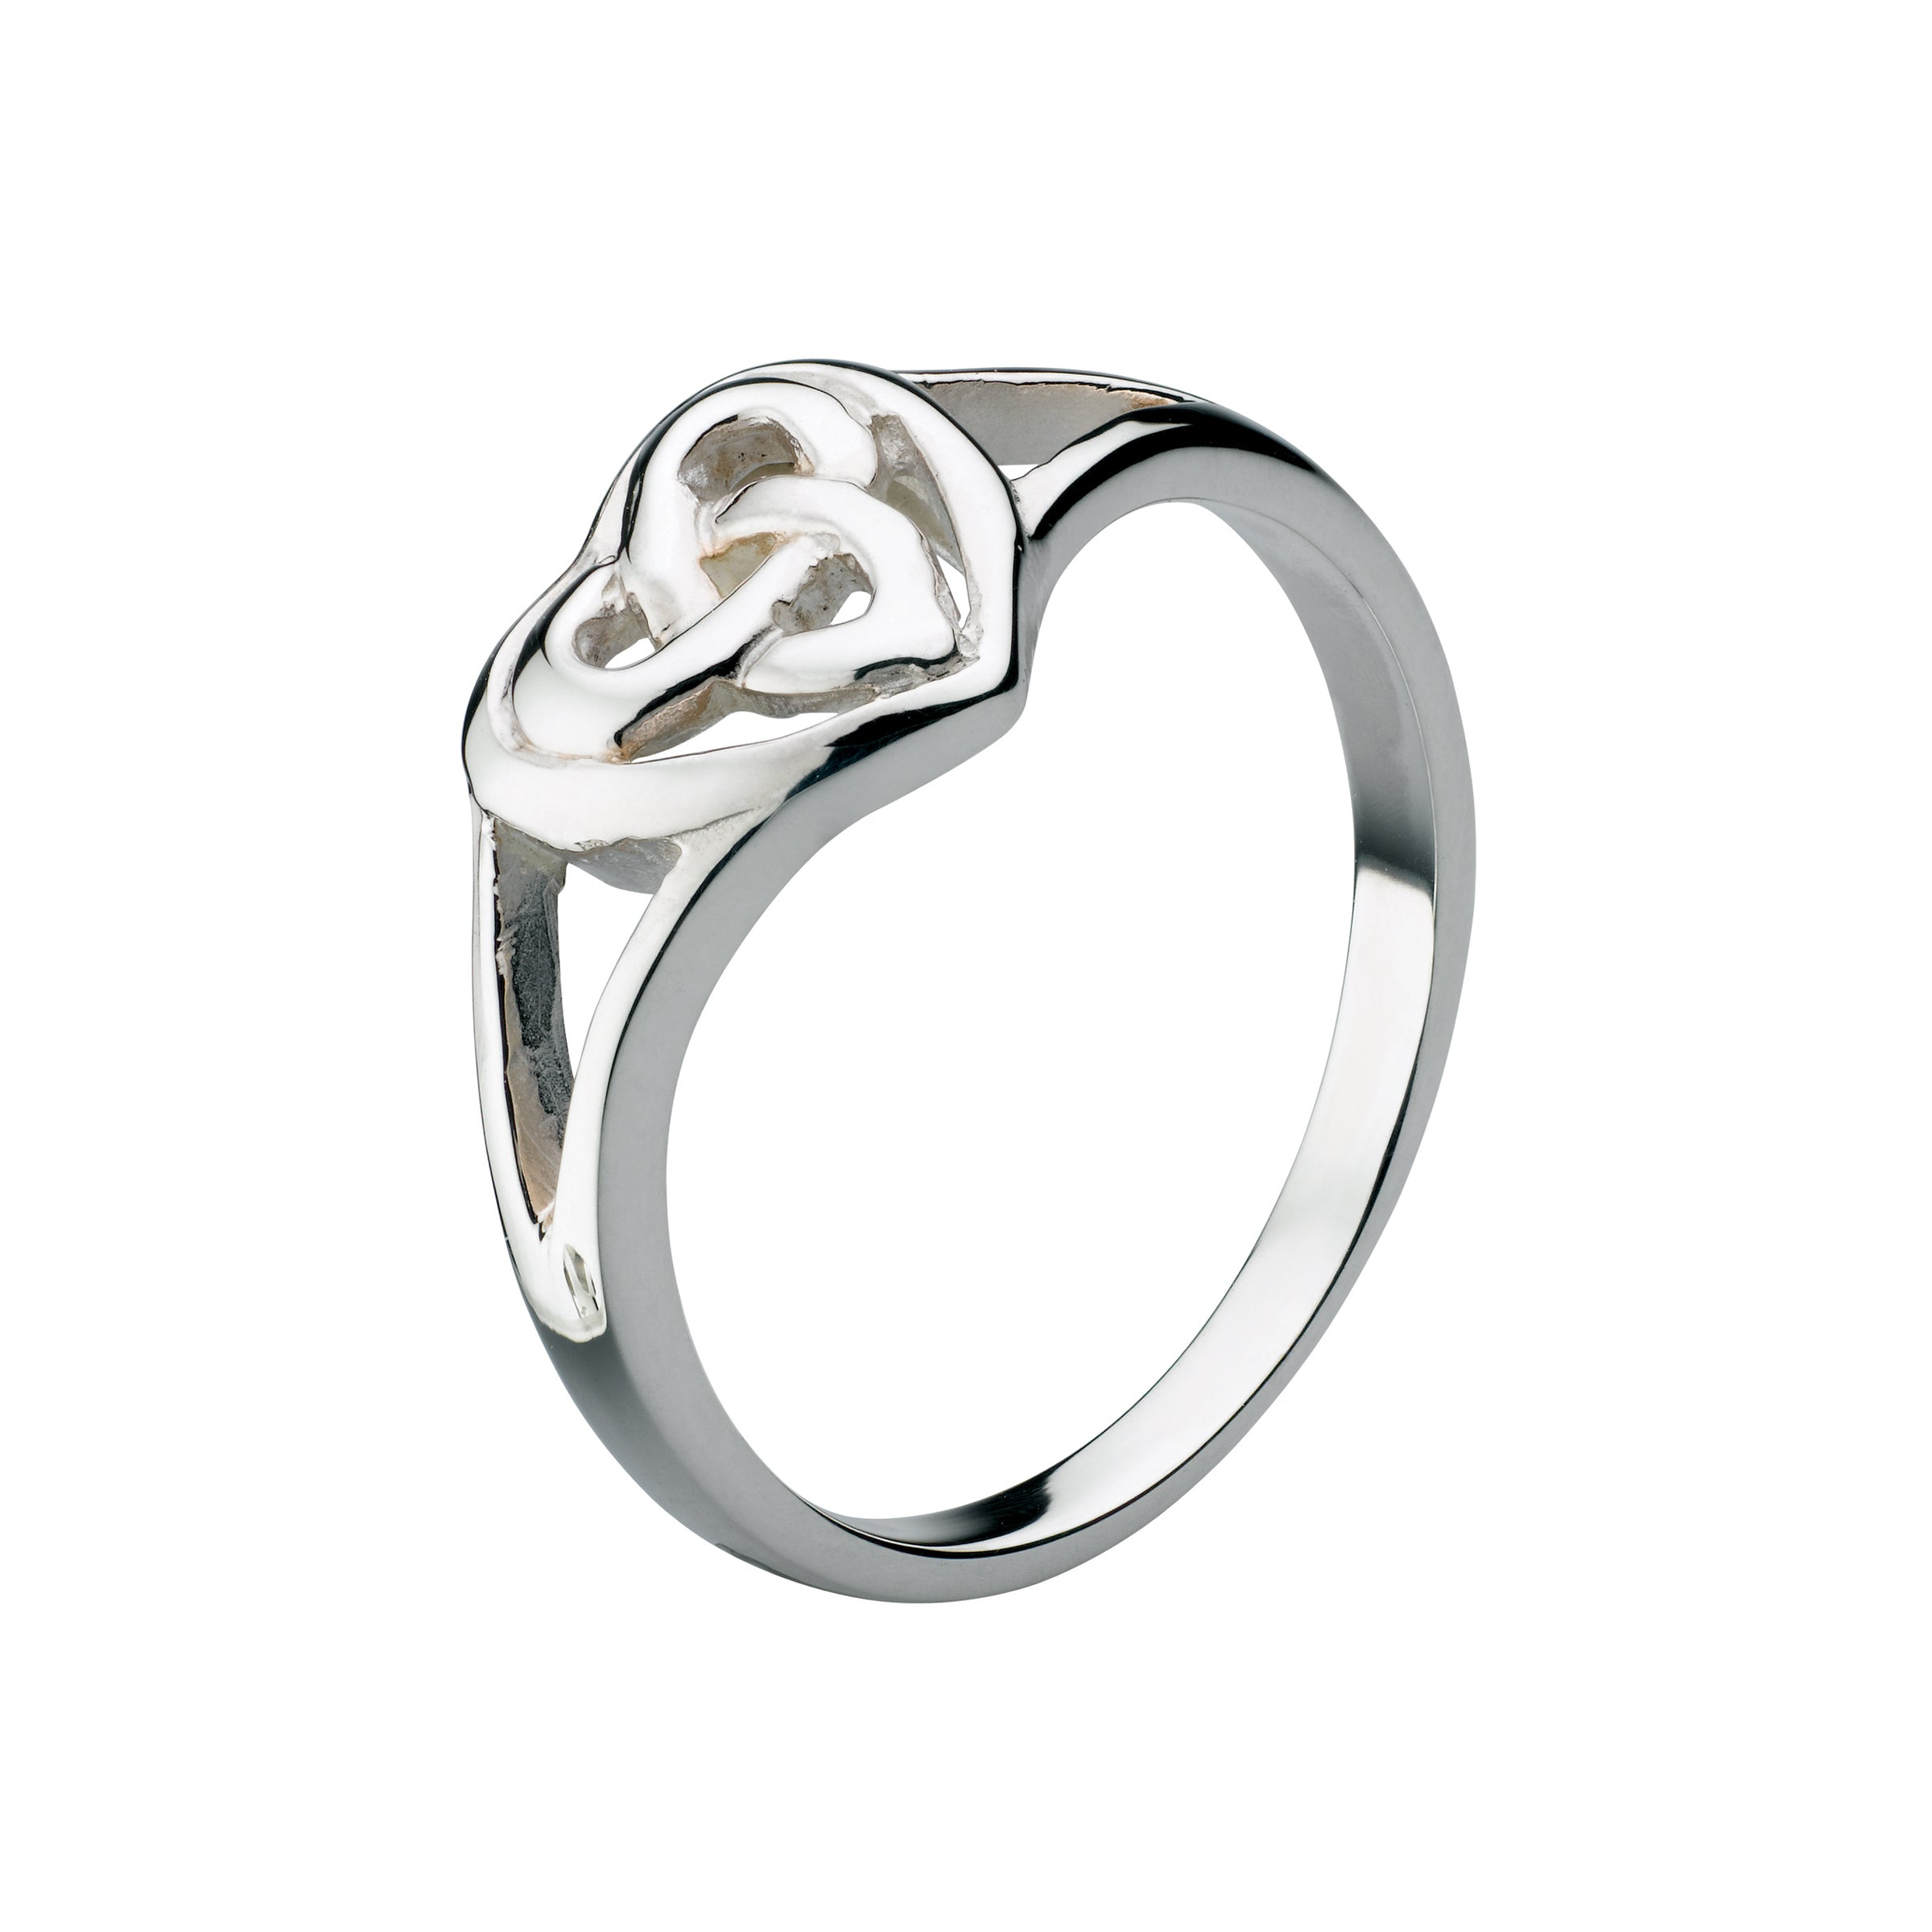 Heritage Celtic Heart Ring, Sterling Silver